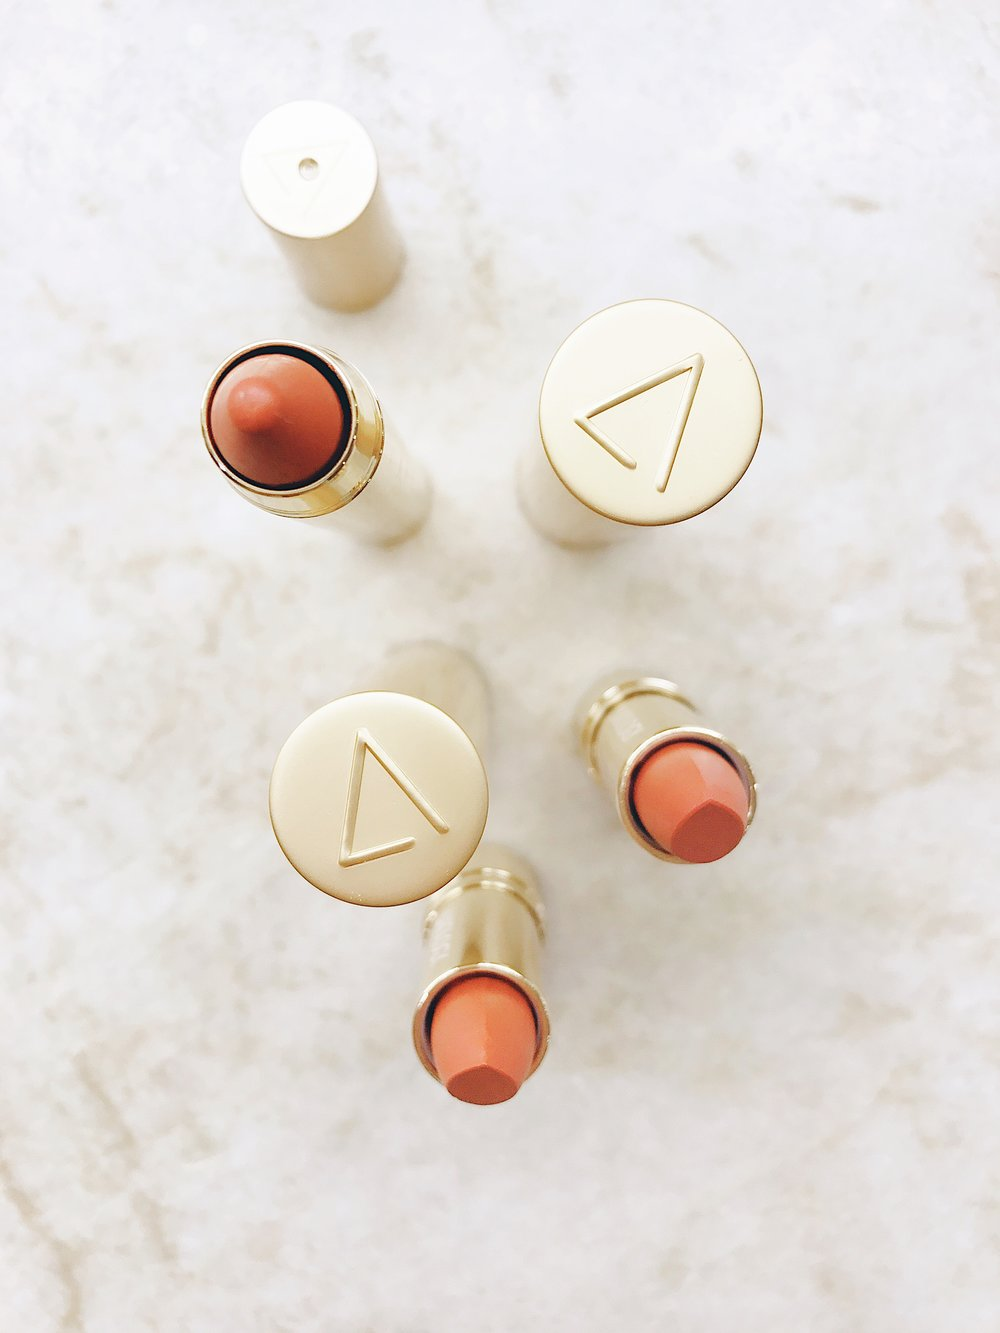 Axiology Organic Lipstick and Lip Crayons at Revolve | janny: organically.